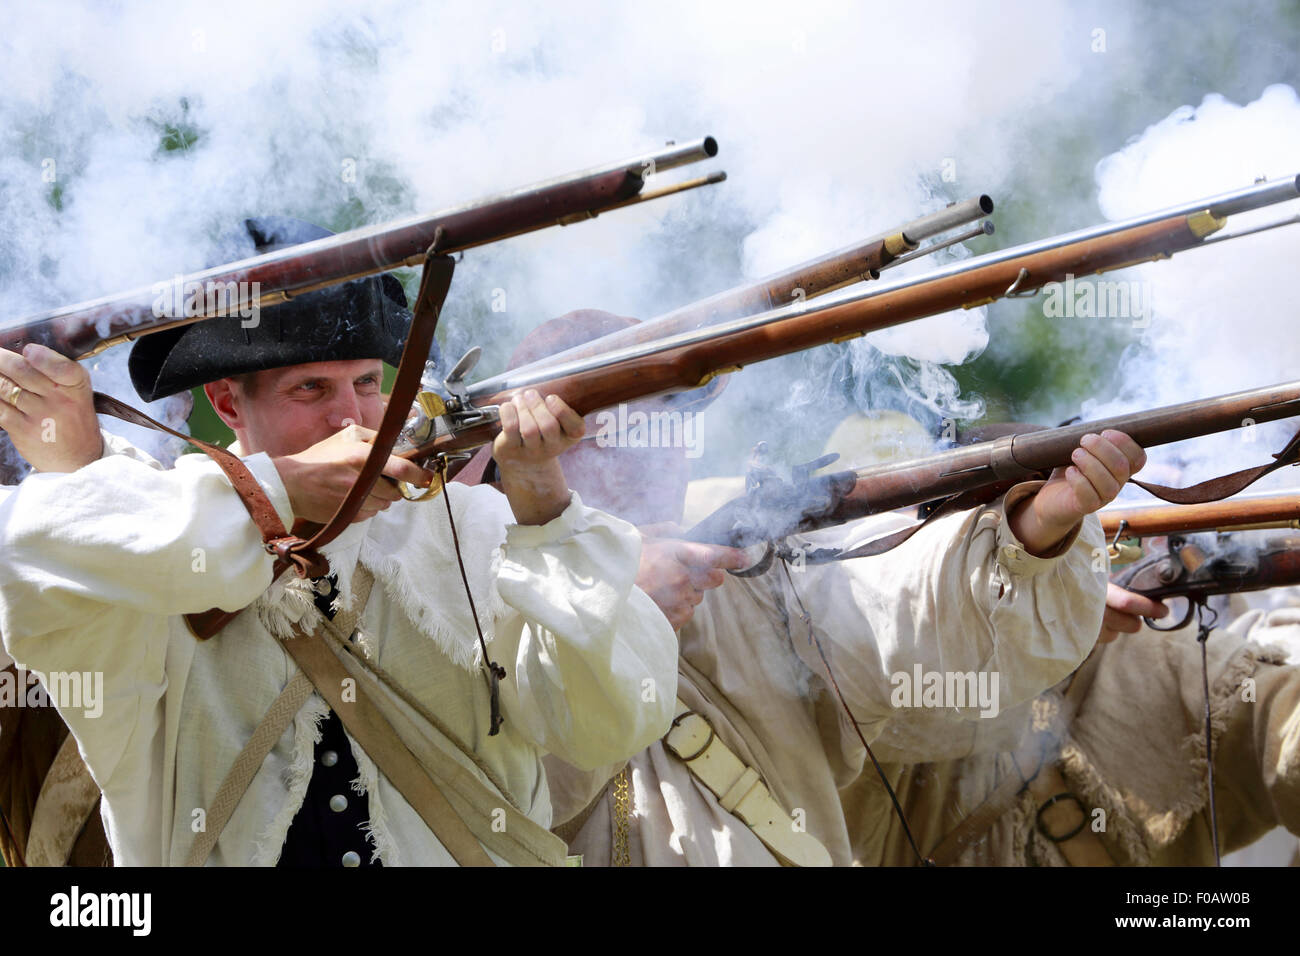 Soldiers Firing Muskets Stock Photos & Soldiers Firing